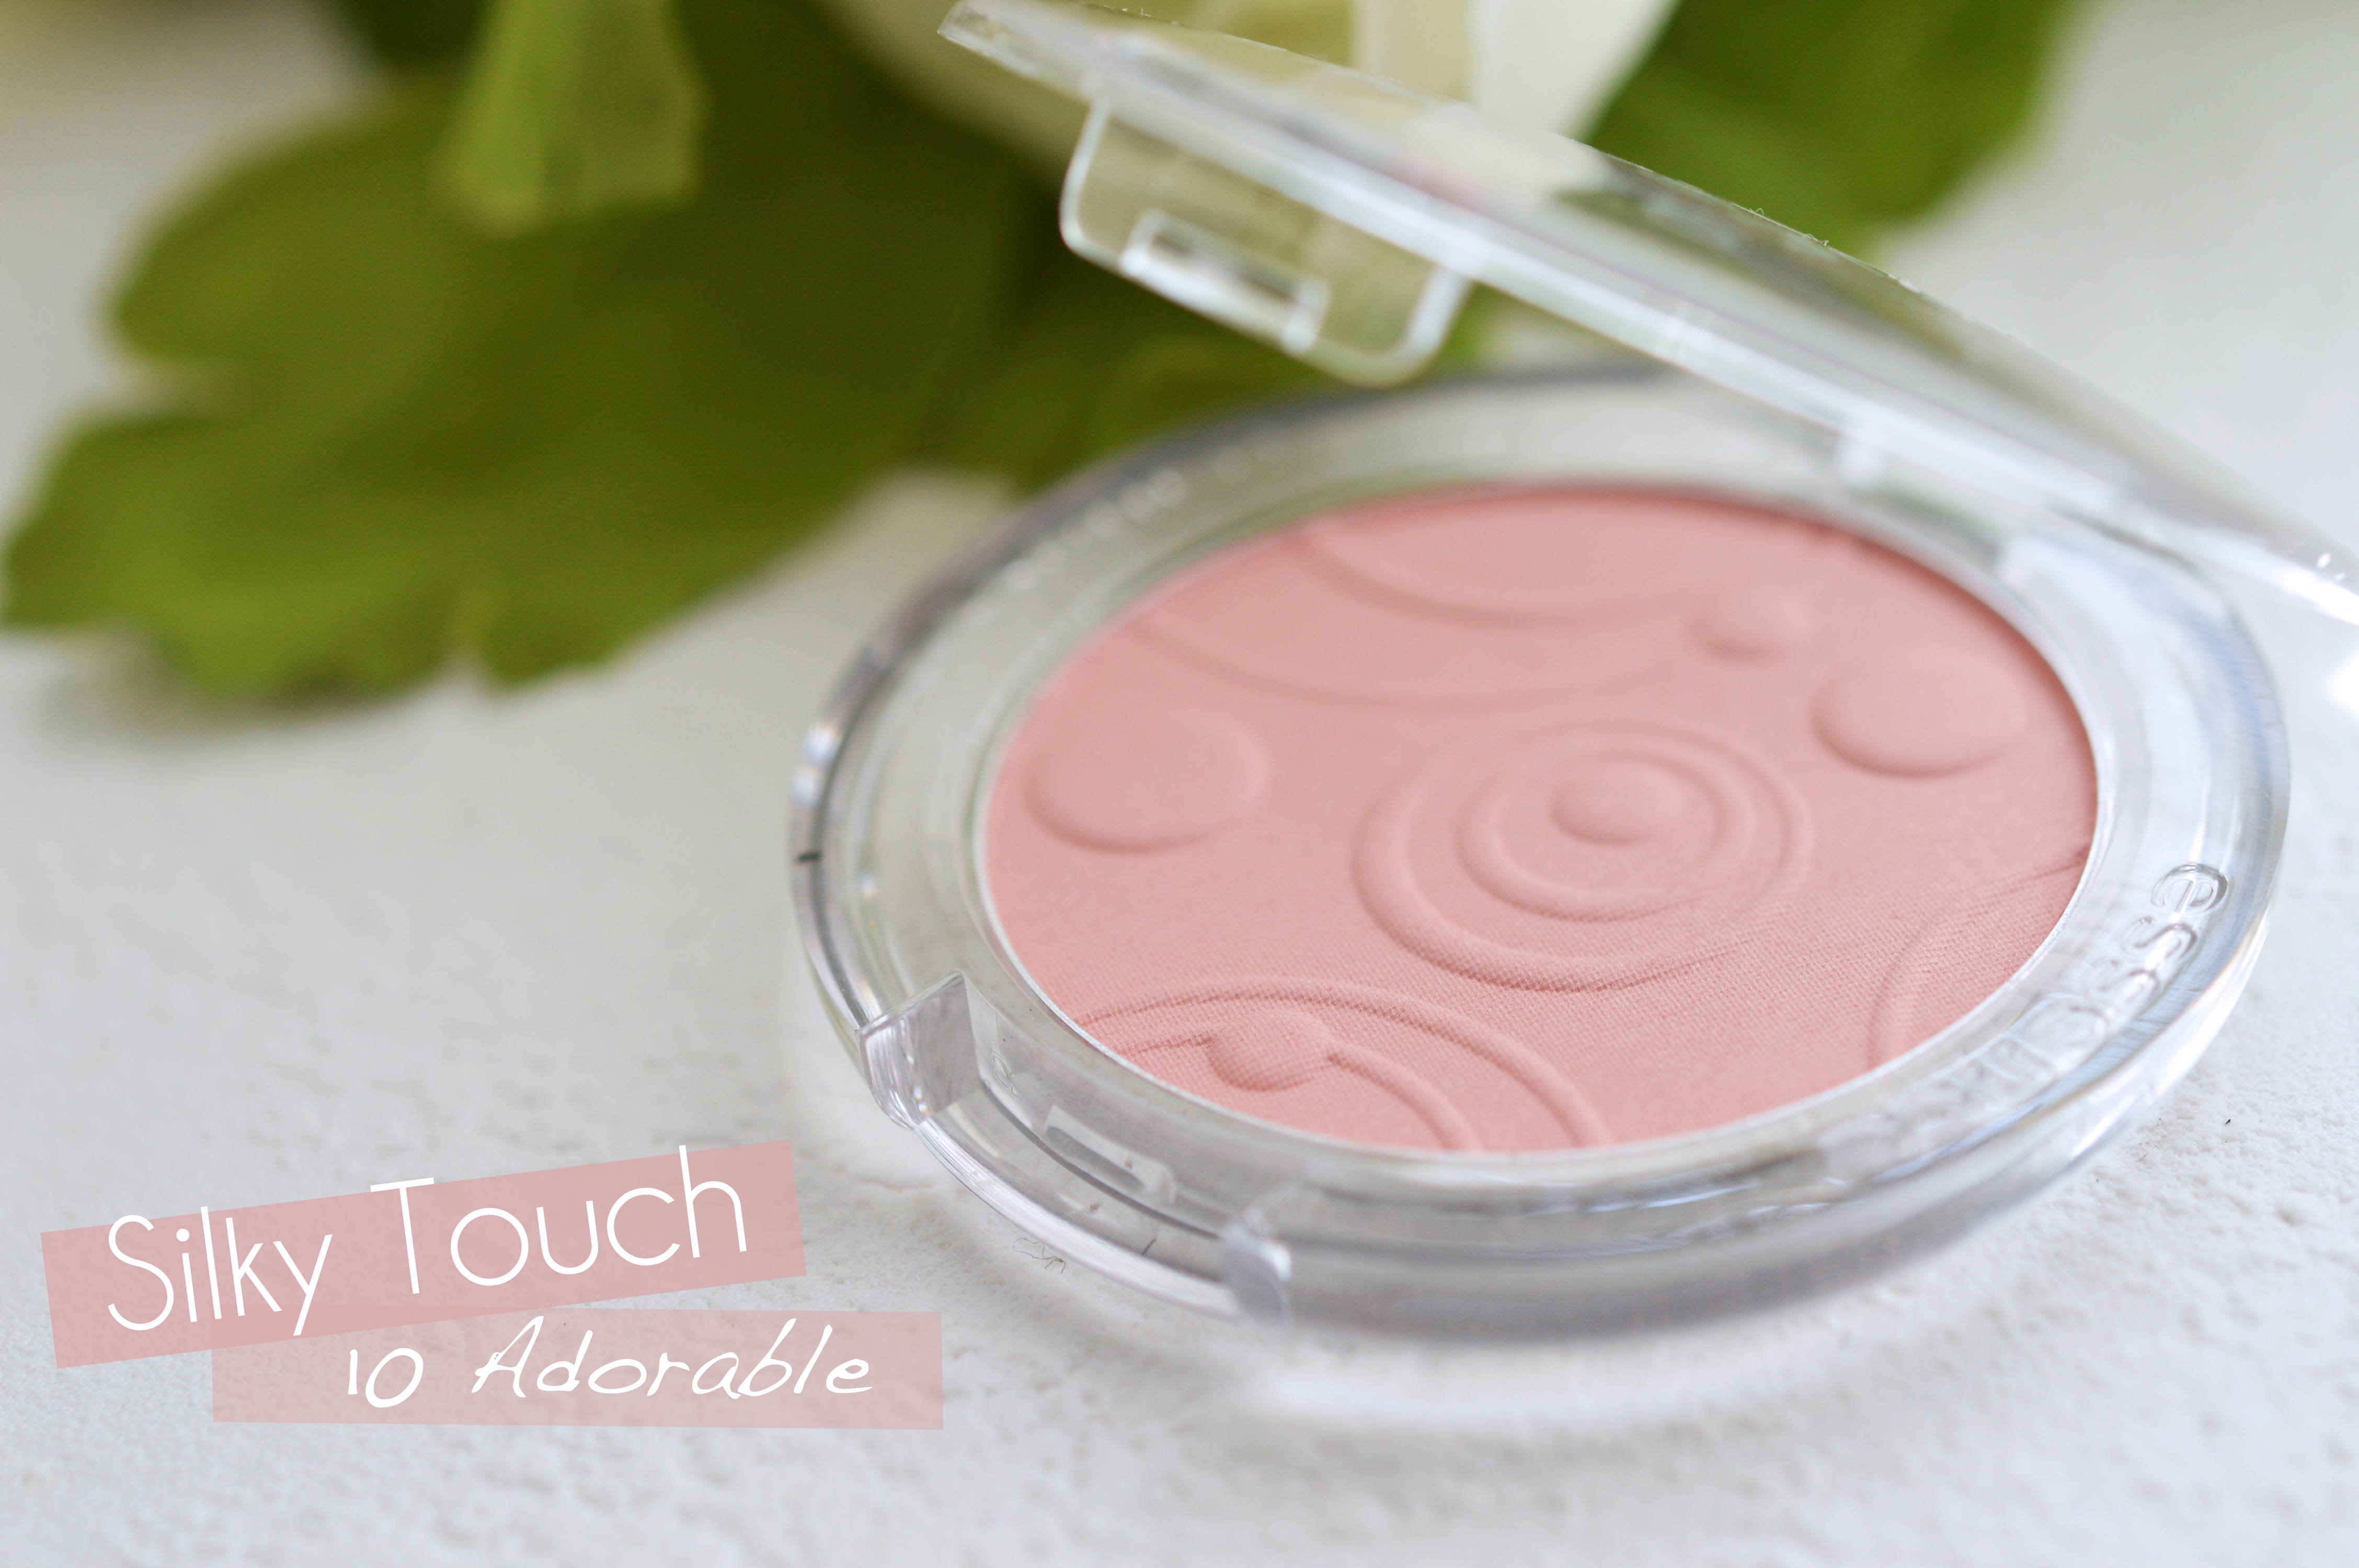 ALITTLEB_BLOG_BEAUTE_ESSENCE_LA_MARQUE_QUIL_FAUT_ENVIER_A_NOS_COPINES_FRONTALIERES_SILKY_TOUCH_BLUSH_10_ADORABLE